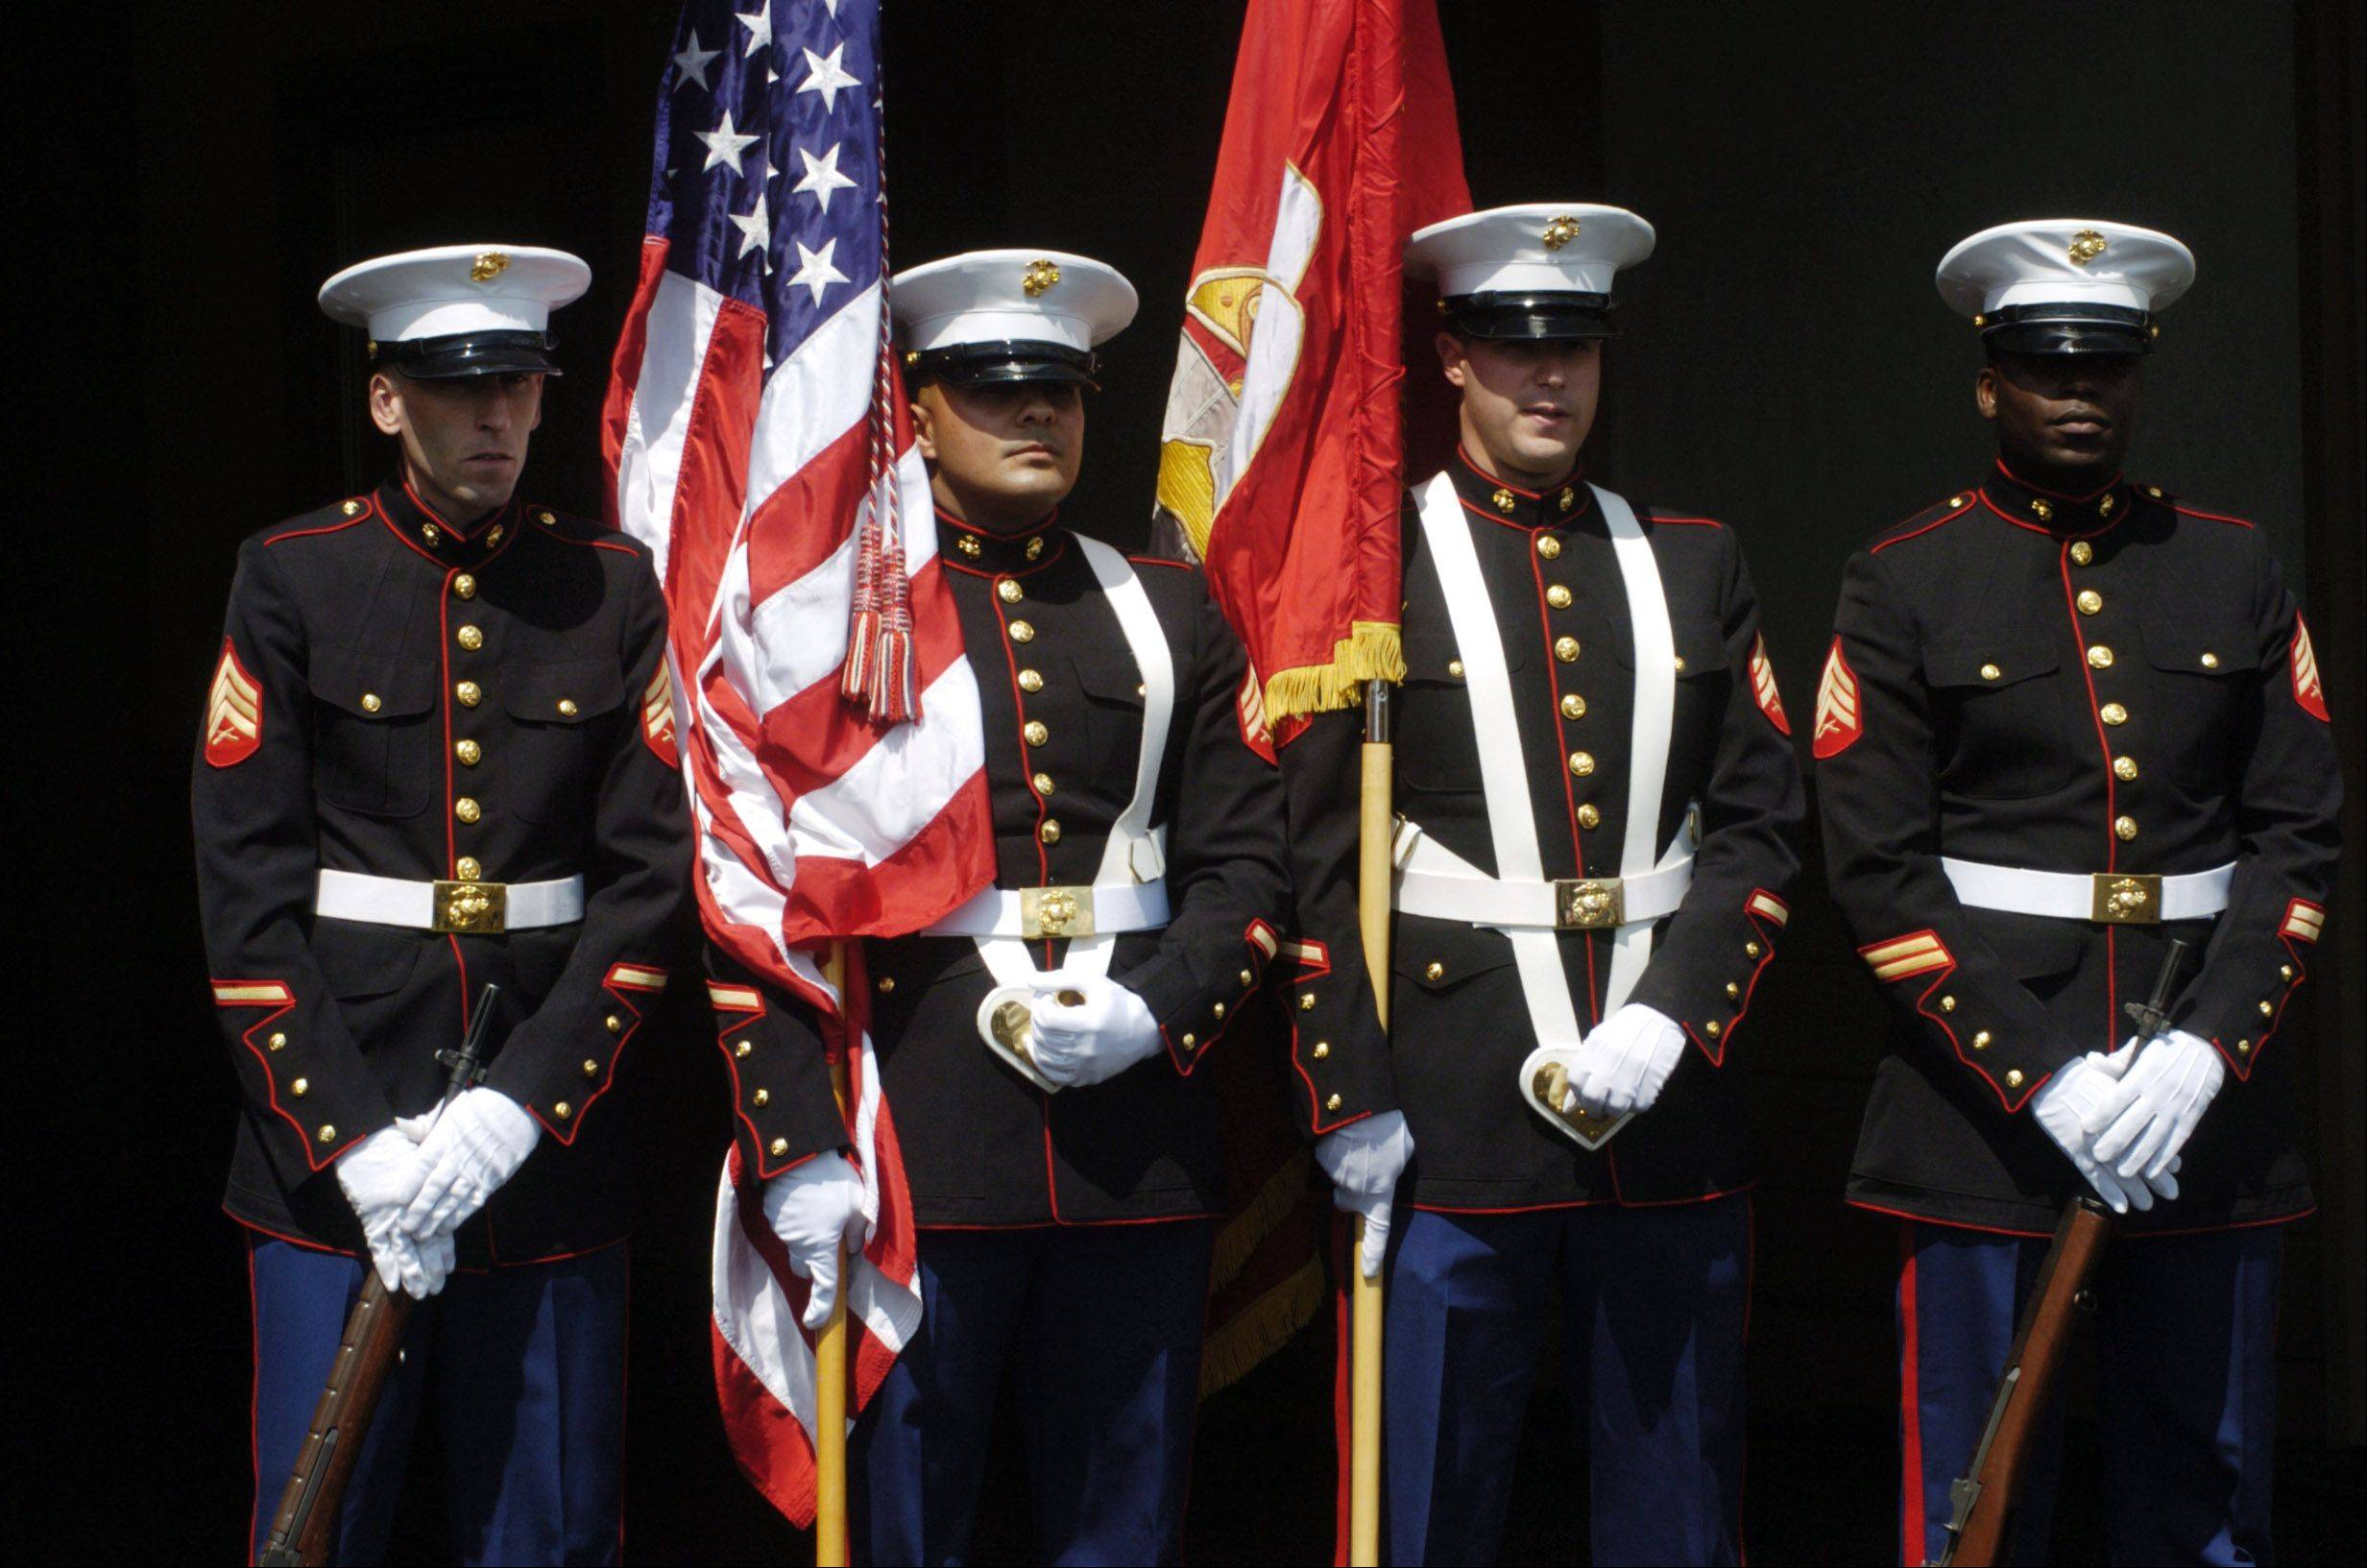 JOE LEWNARD/jlewnard@dailyherald.com The Marine Color Guard is ready to present the colors prior to the singing of the National Anthem the Arlington Million at Arlington Park Saturday.